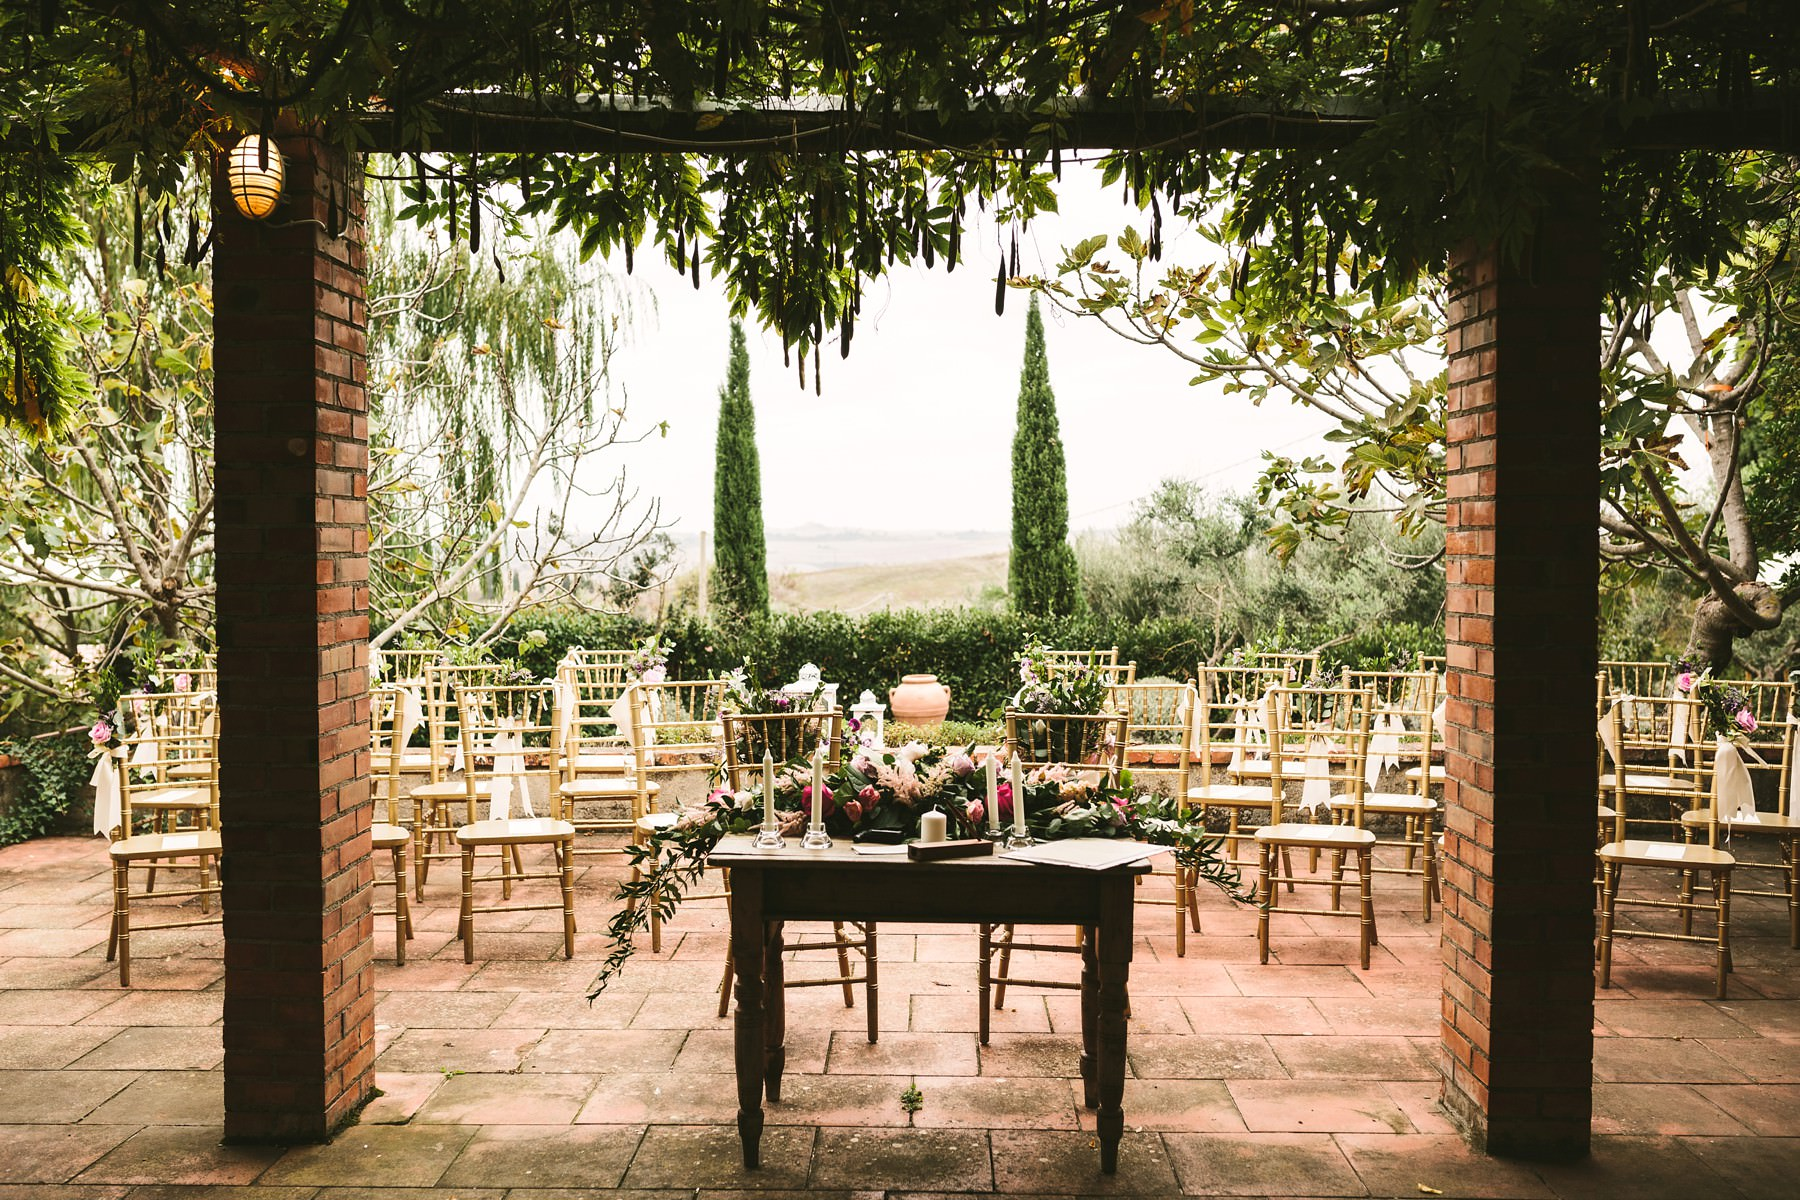 Elegant outdoor ceremony decor for destination wedding in Val D'Orcia